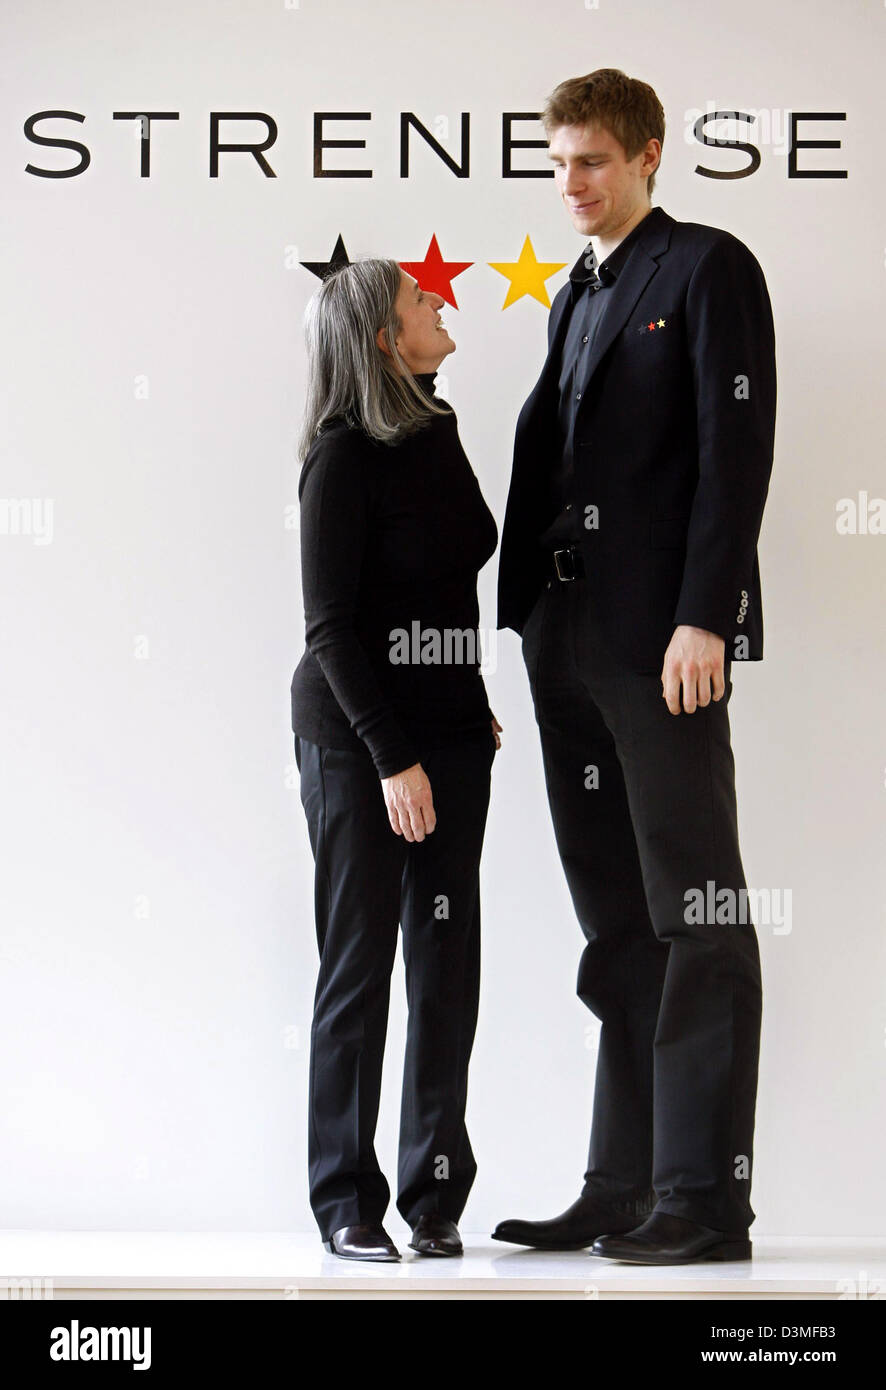 Stock Photo - Fashion designer Gabriele Strehle looks up to German national soccer player Per Mertesacker wearing the German national soccer team's official suit for the 2006 World Cup. The